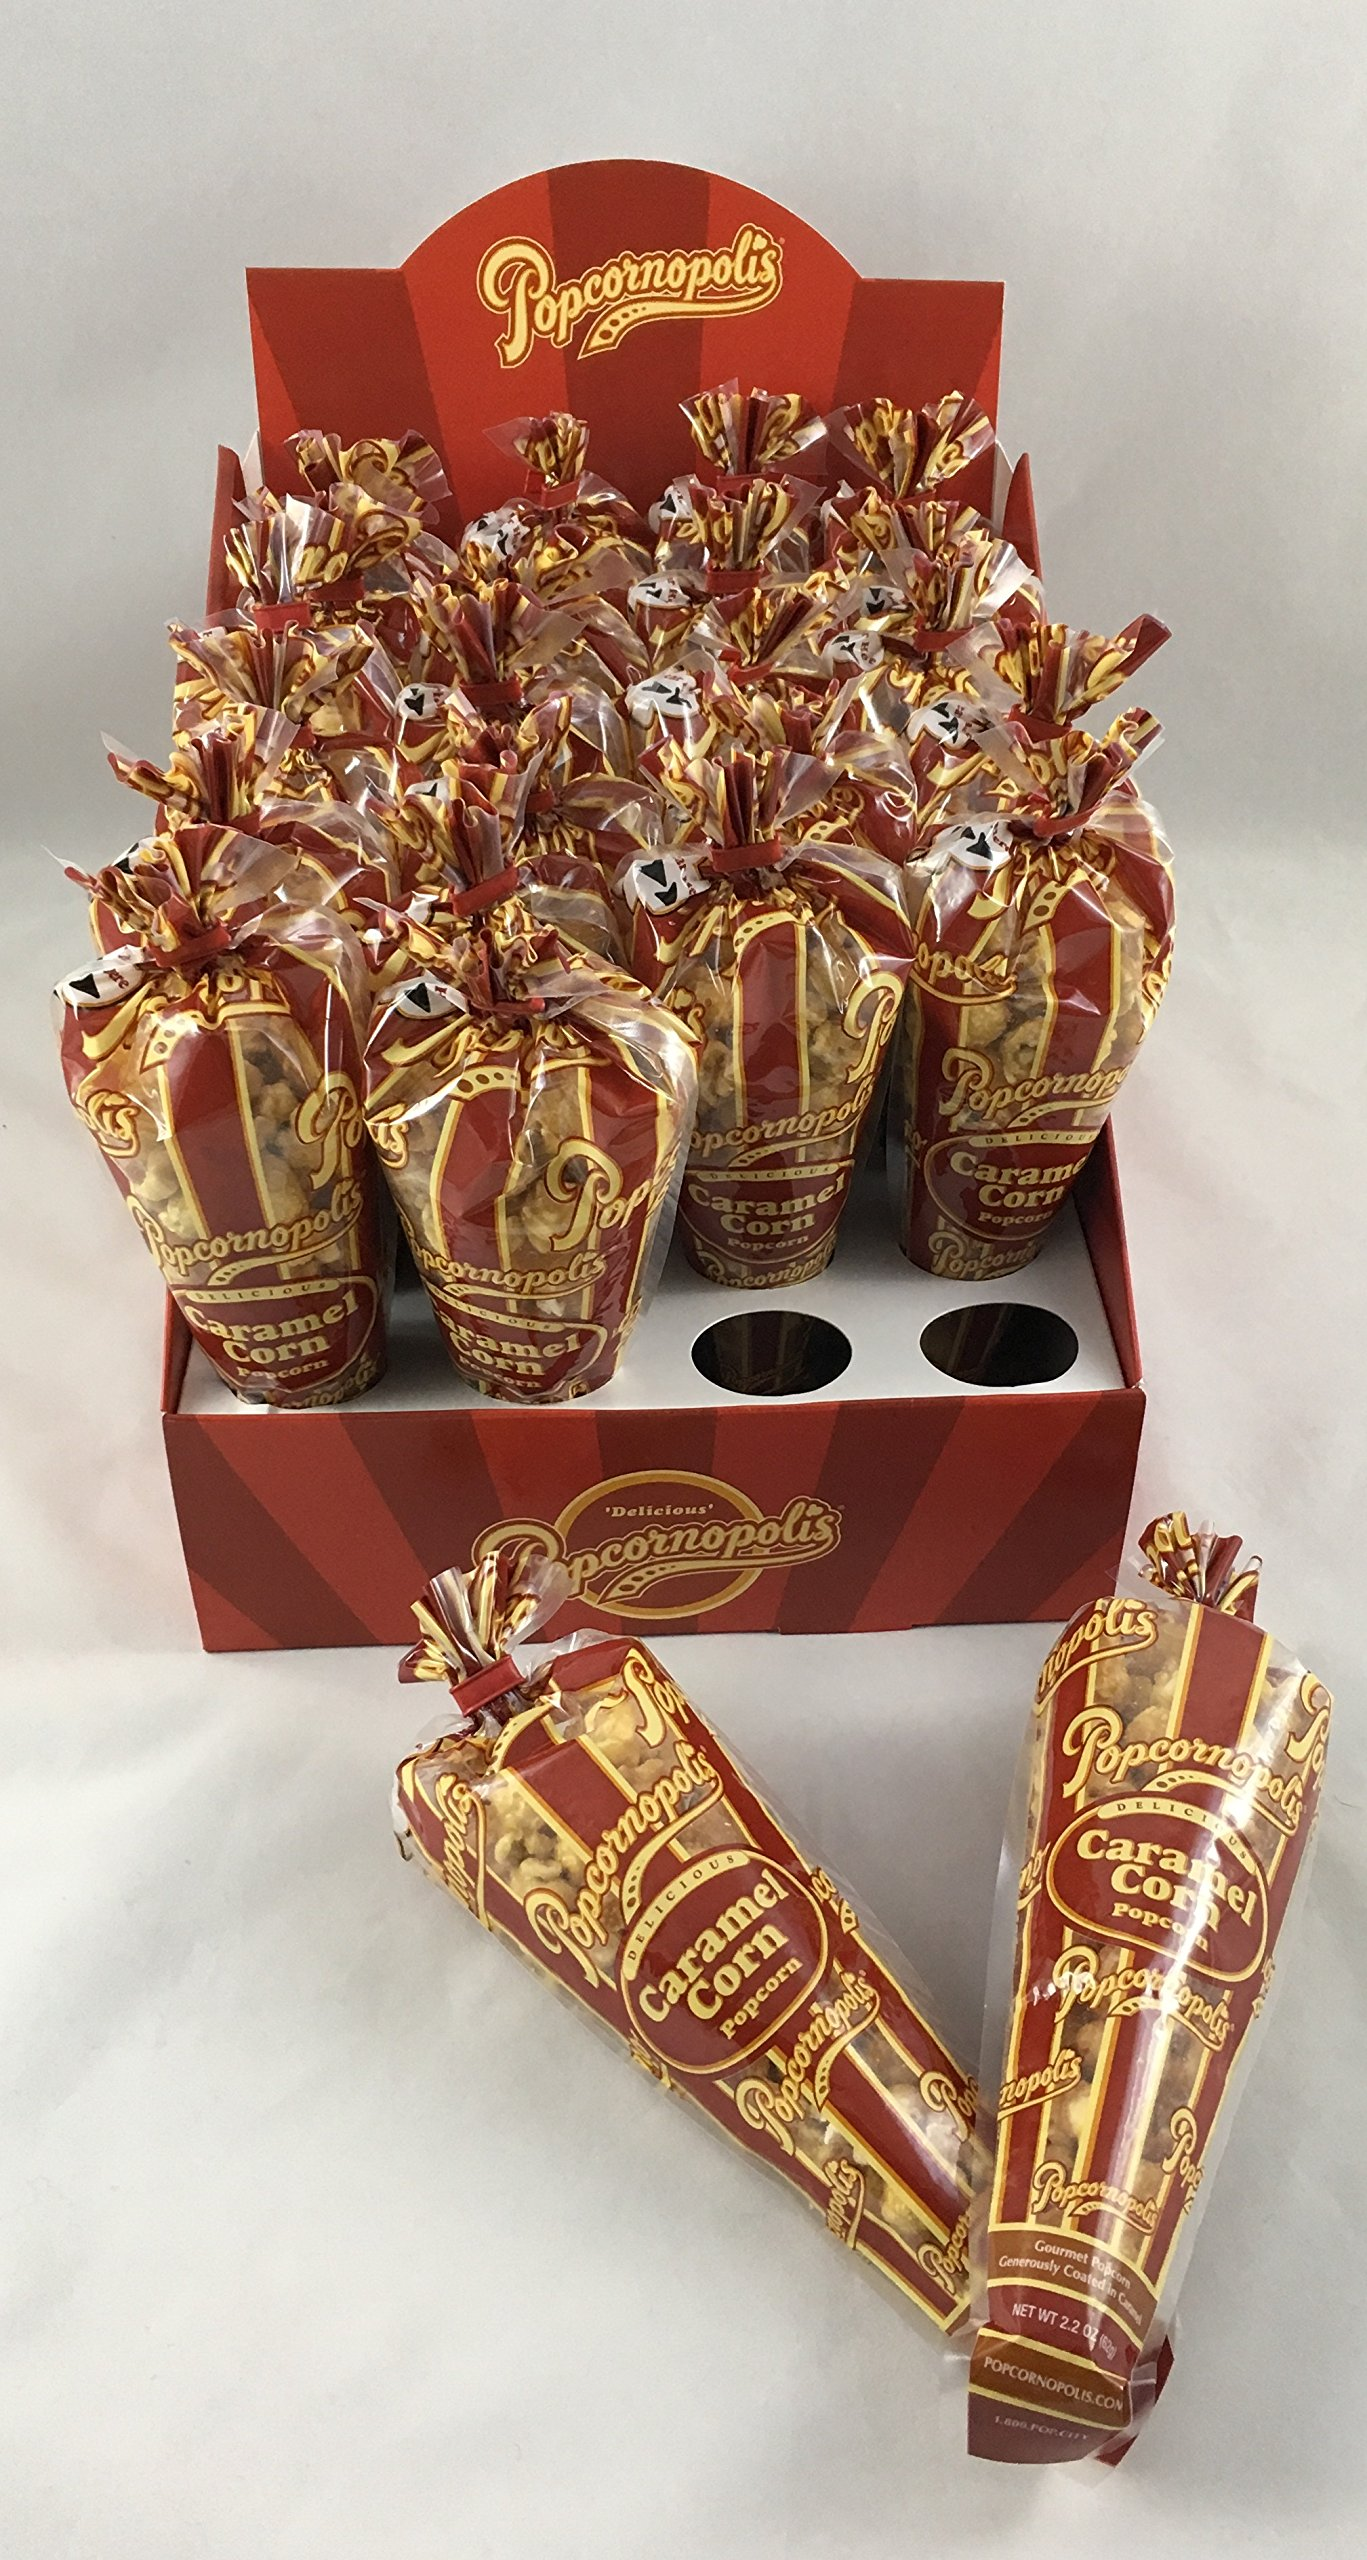 Popcornopolis Caramel Mini Cones 24ct. with Display Box, Great for Party Favors, & Snackrooms by Popcornopolis (Image #2)